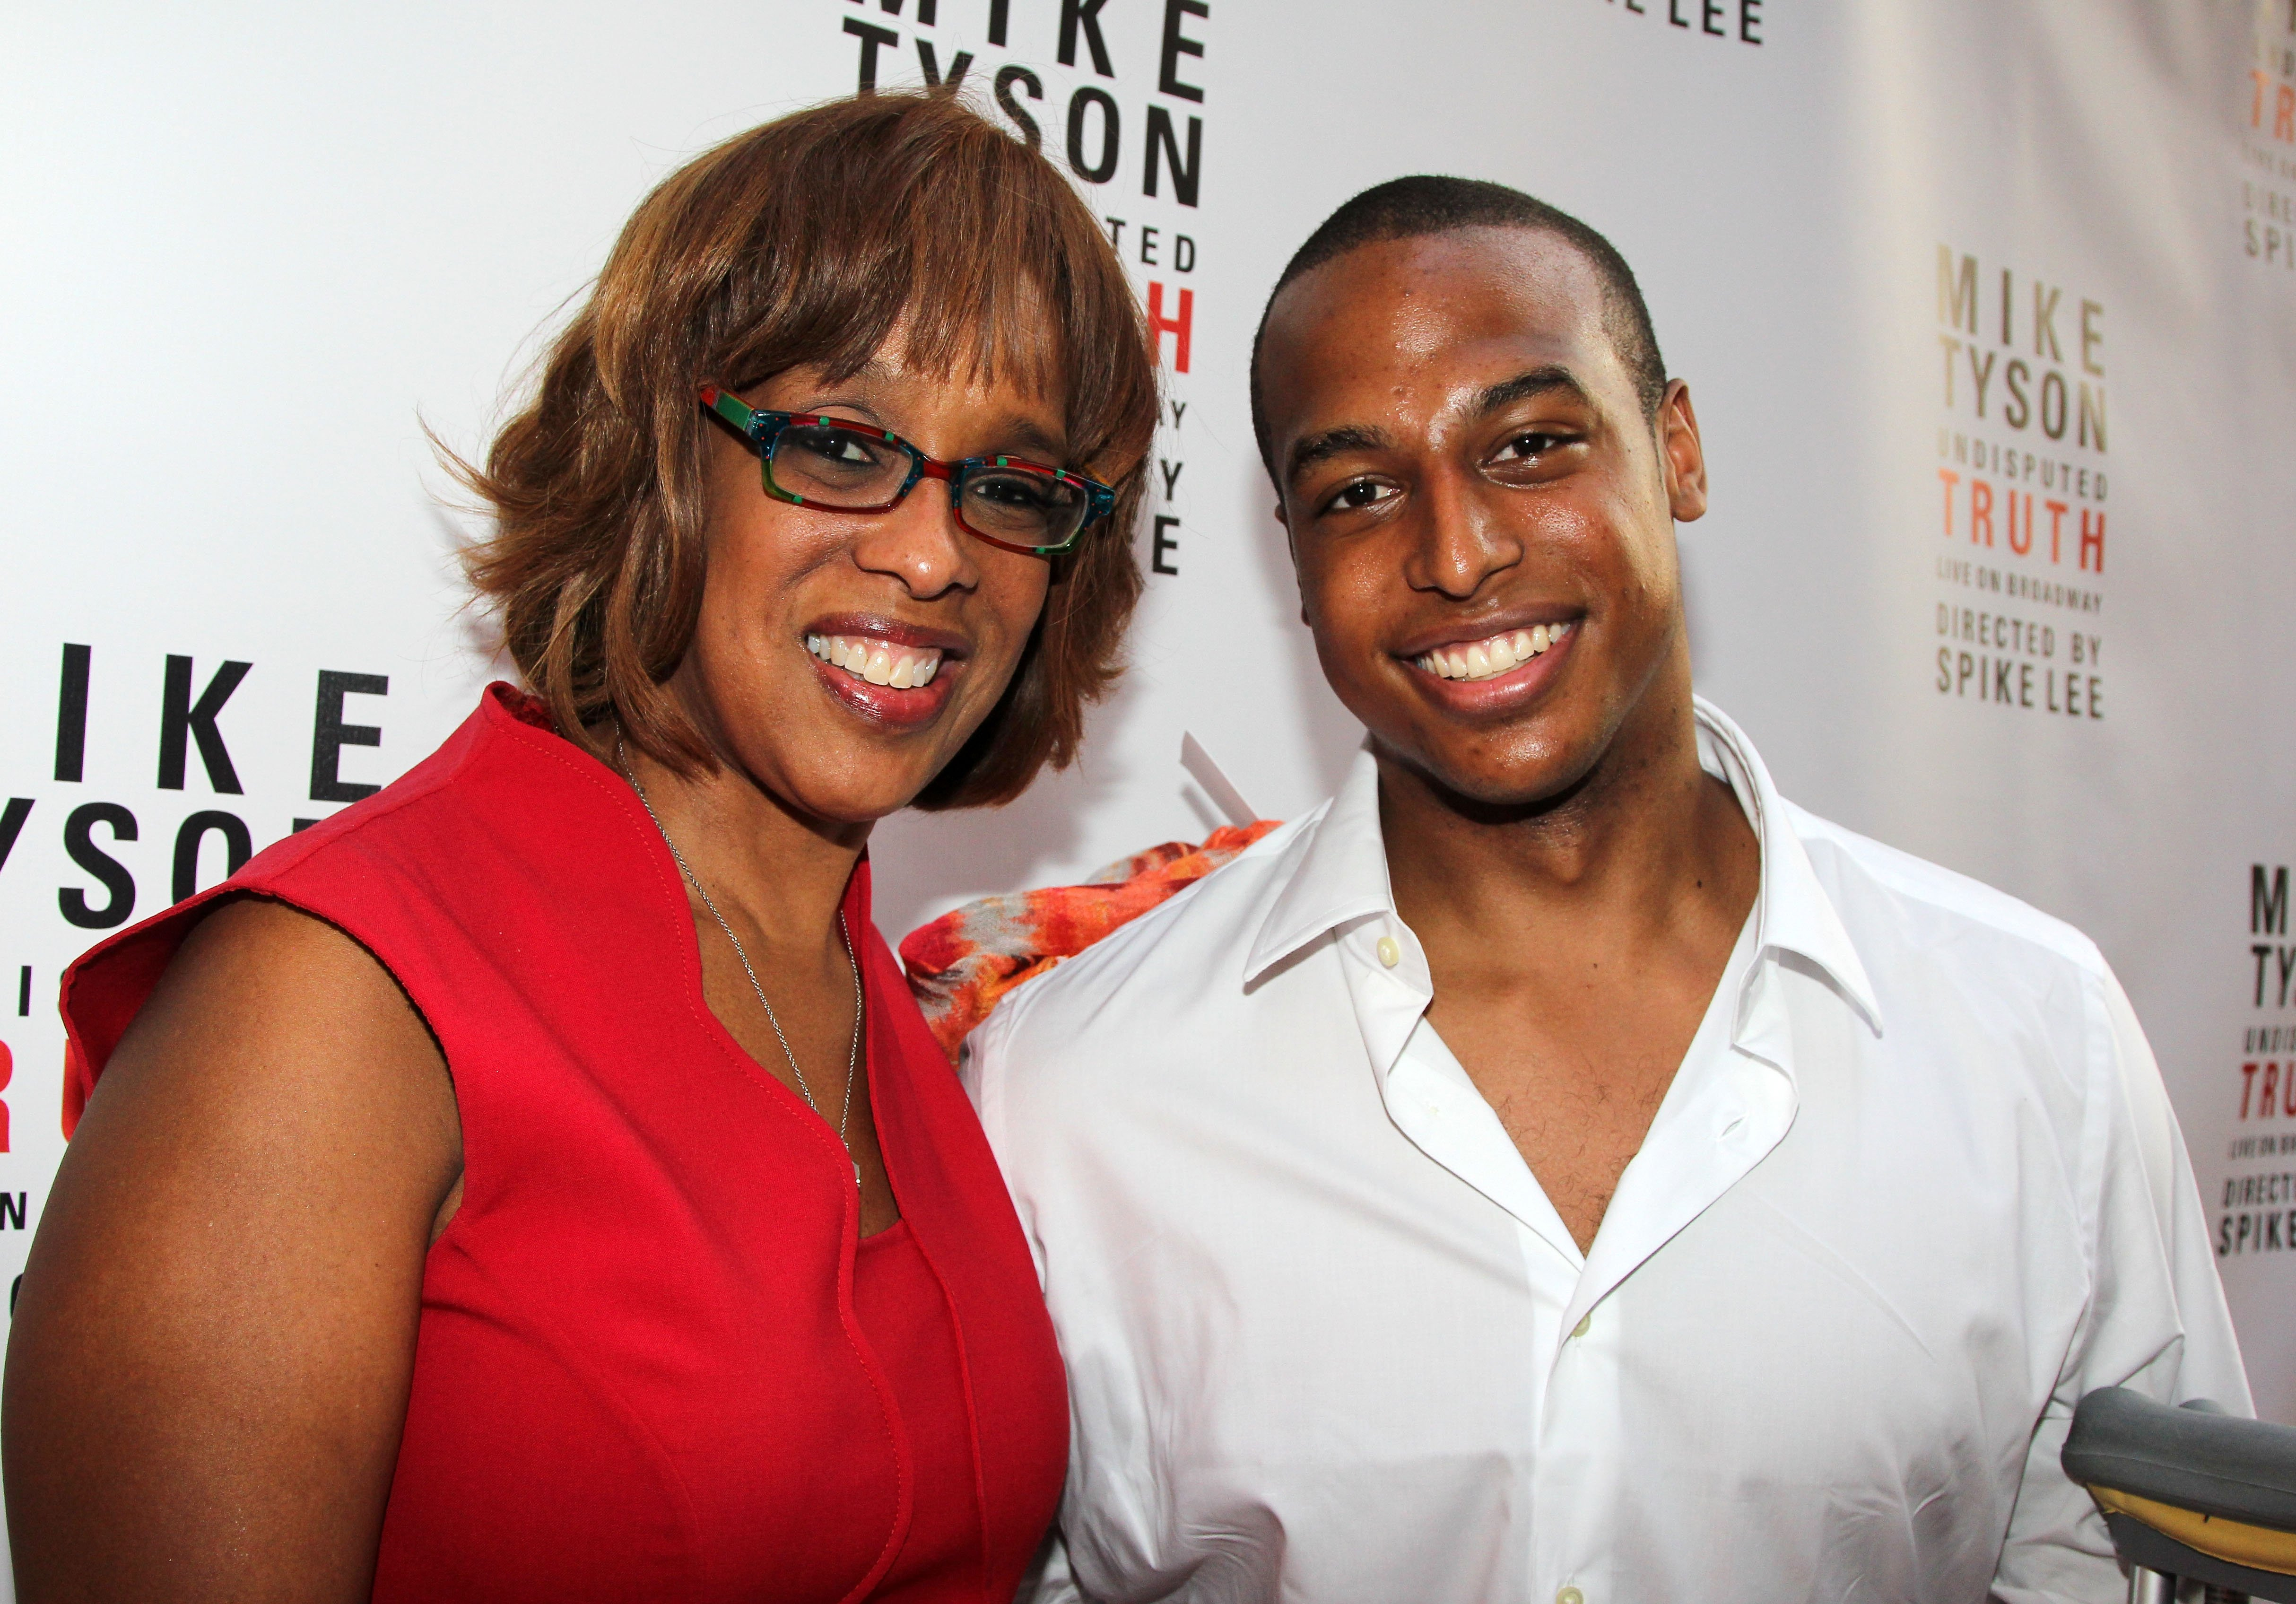 "Gayle King and her son Will Bumpus attend the Broadway opening night for ""Mike Tyson: Undisputed Truth"" at the Longacre Theatre on August 2, 2012 in New York City 